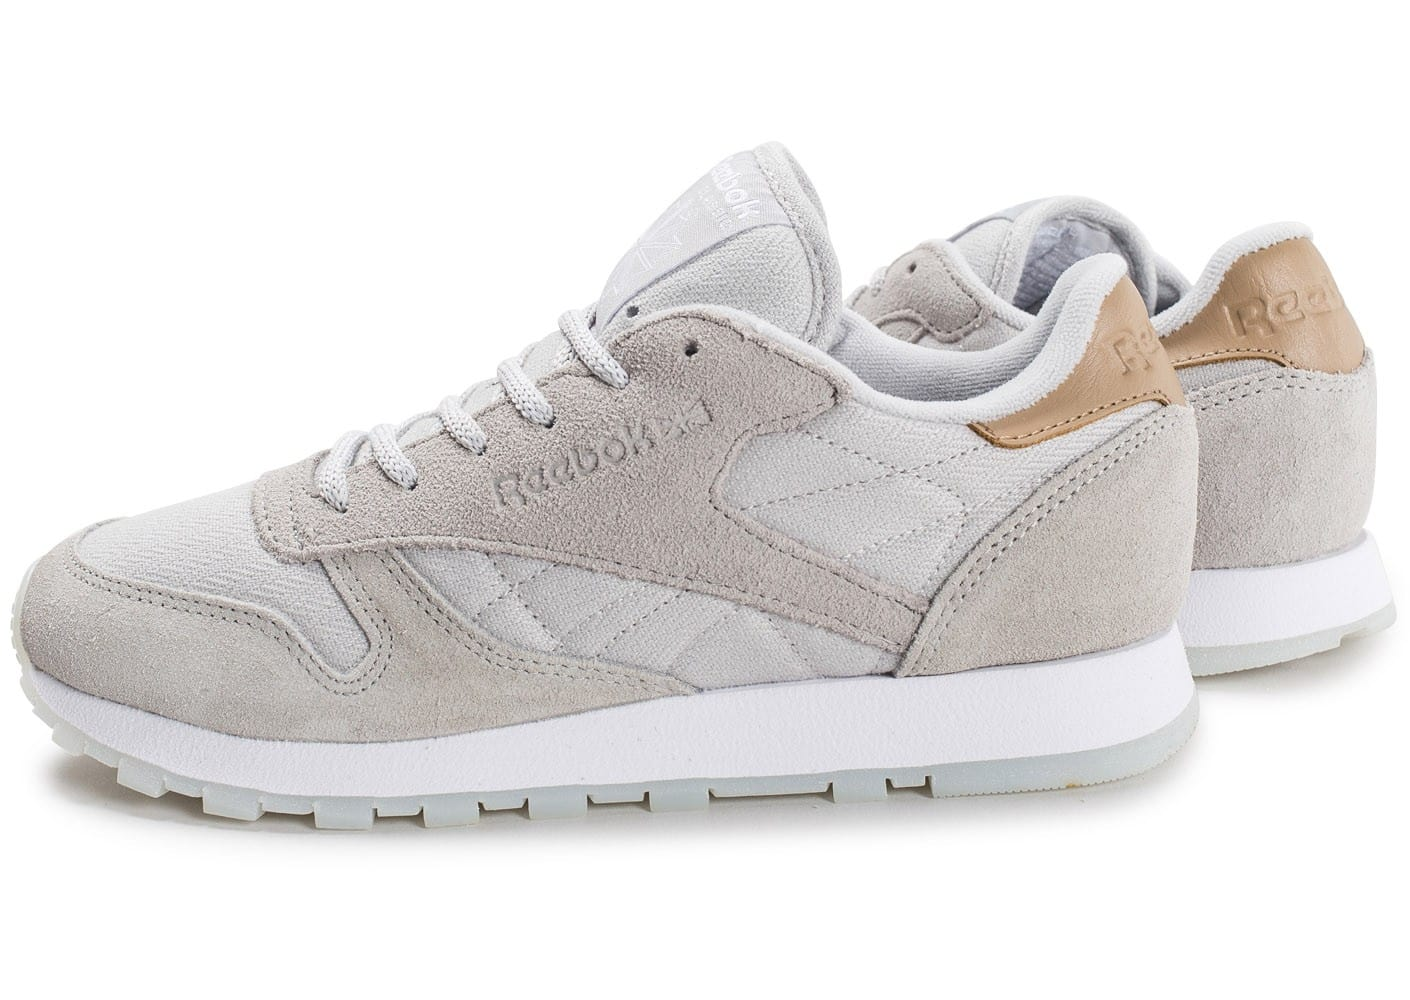 Reebok Classic Leather Sea Worn grise Chaussures Baskets